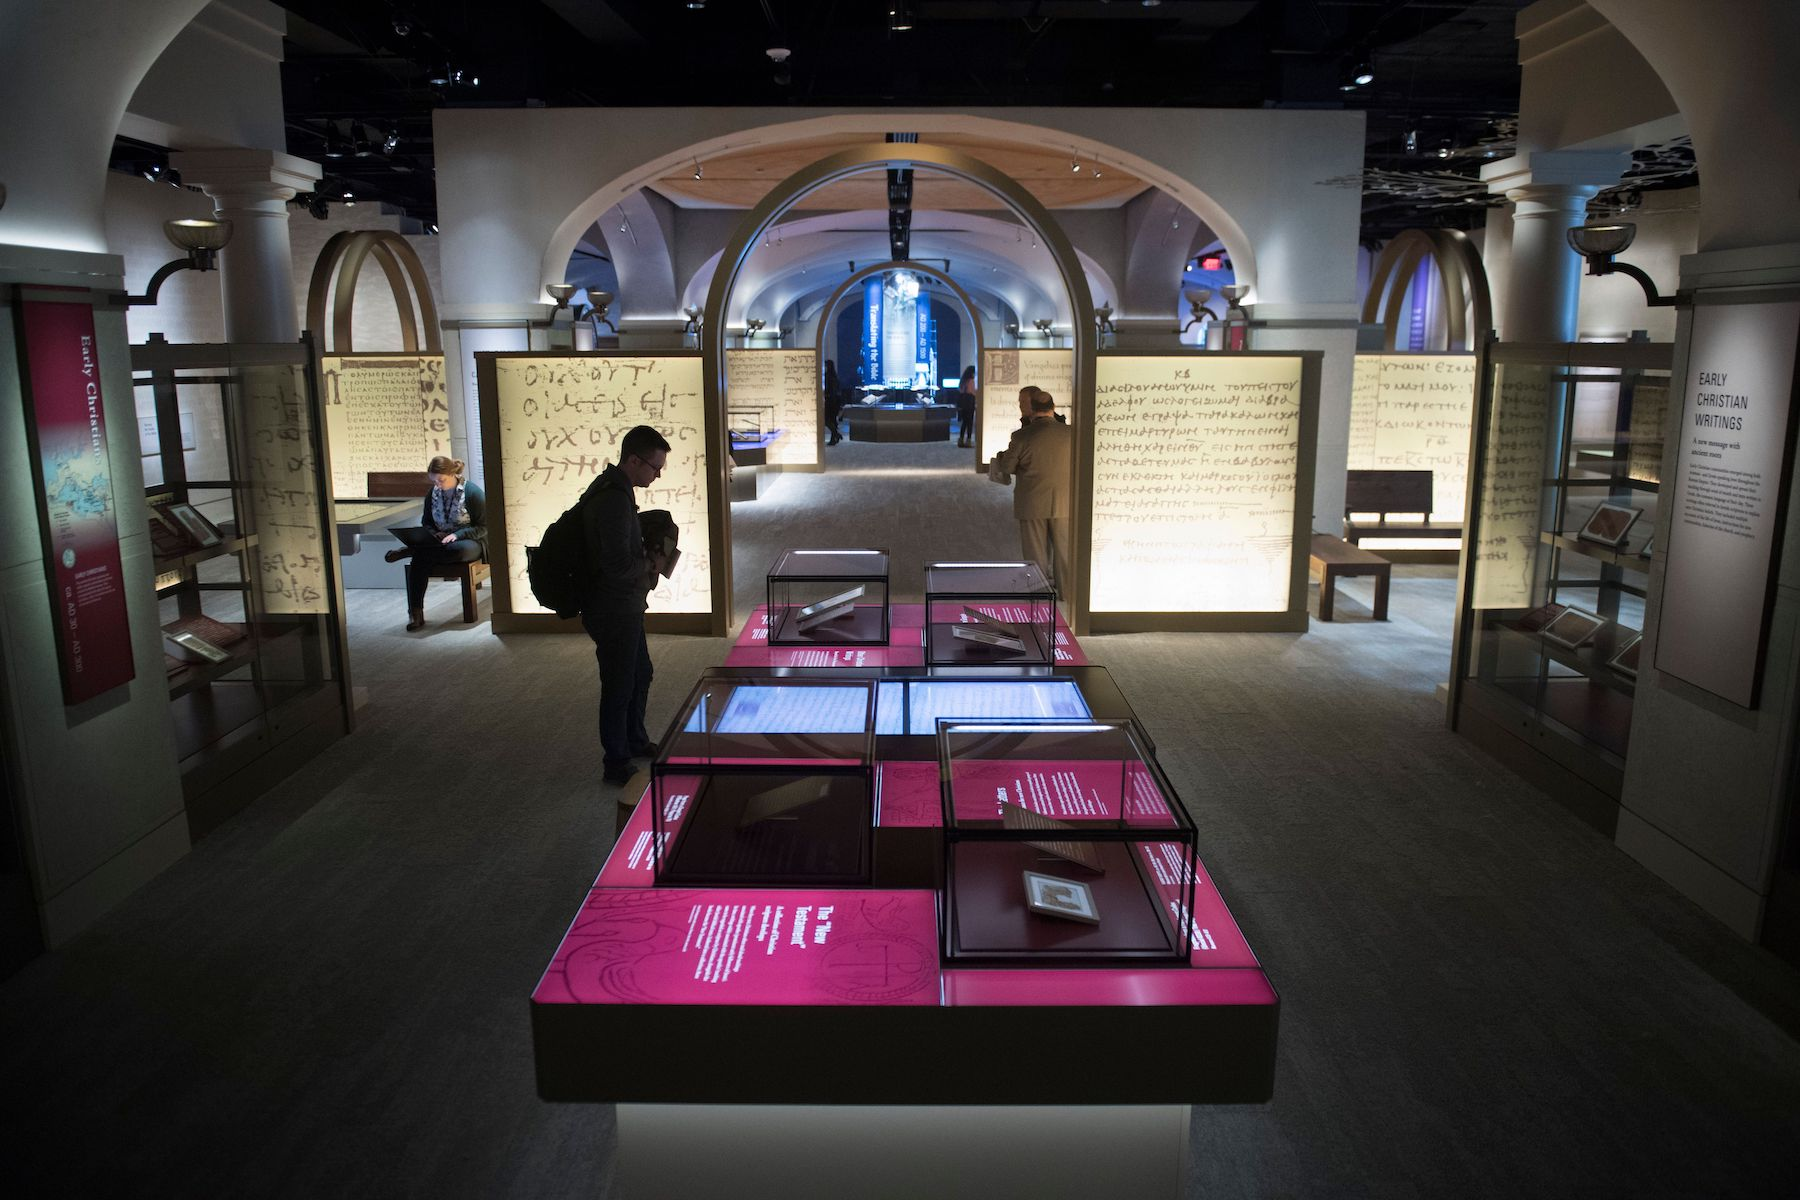 The Museum of the Bible Must Once Again Return Artifacts, This Time an Entire Warehouse of 5,000 Egyptian Objects | artnet News